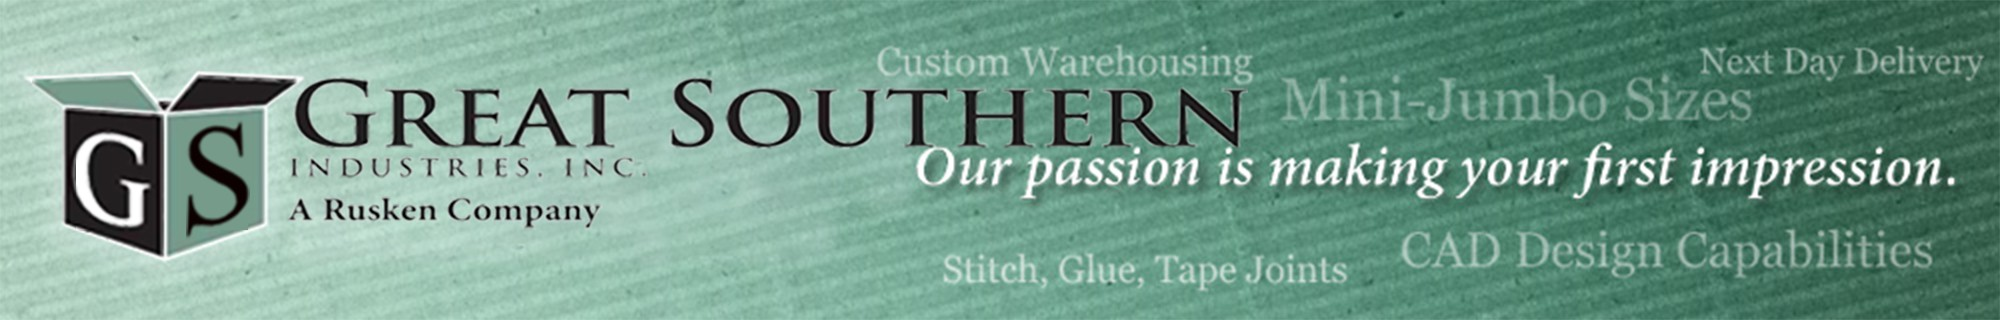 Great Southern Industries, Inc  | LinkedIn